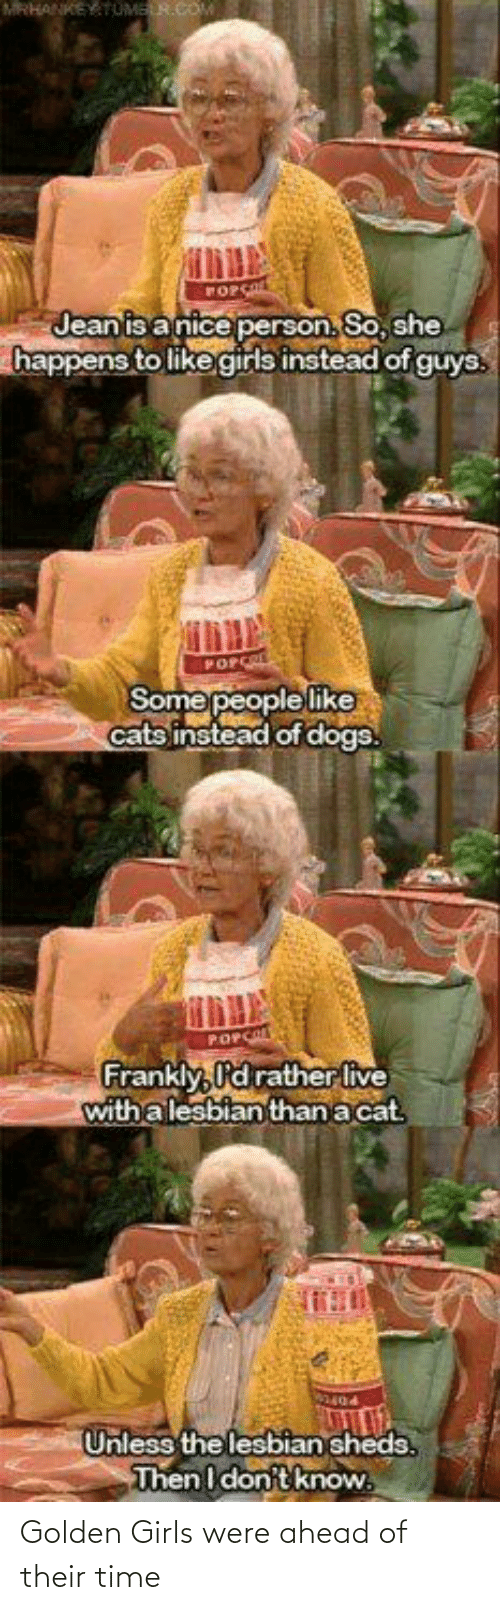 Girls: Golden Girls were ahead of their time